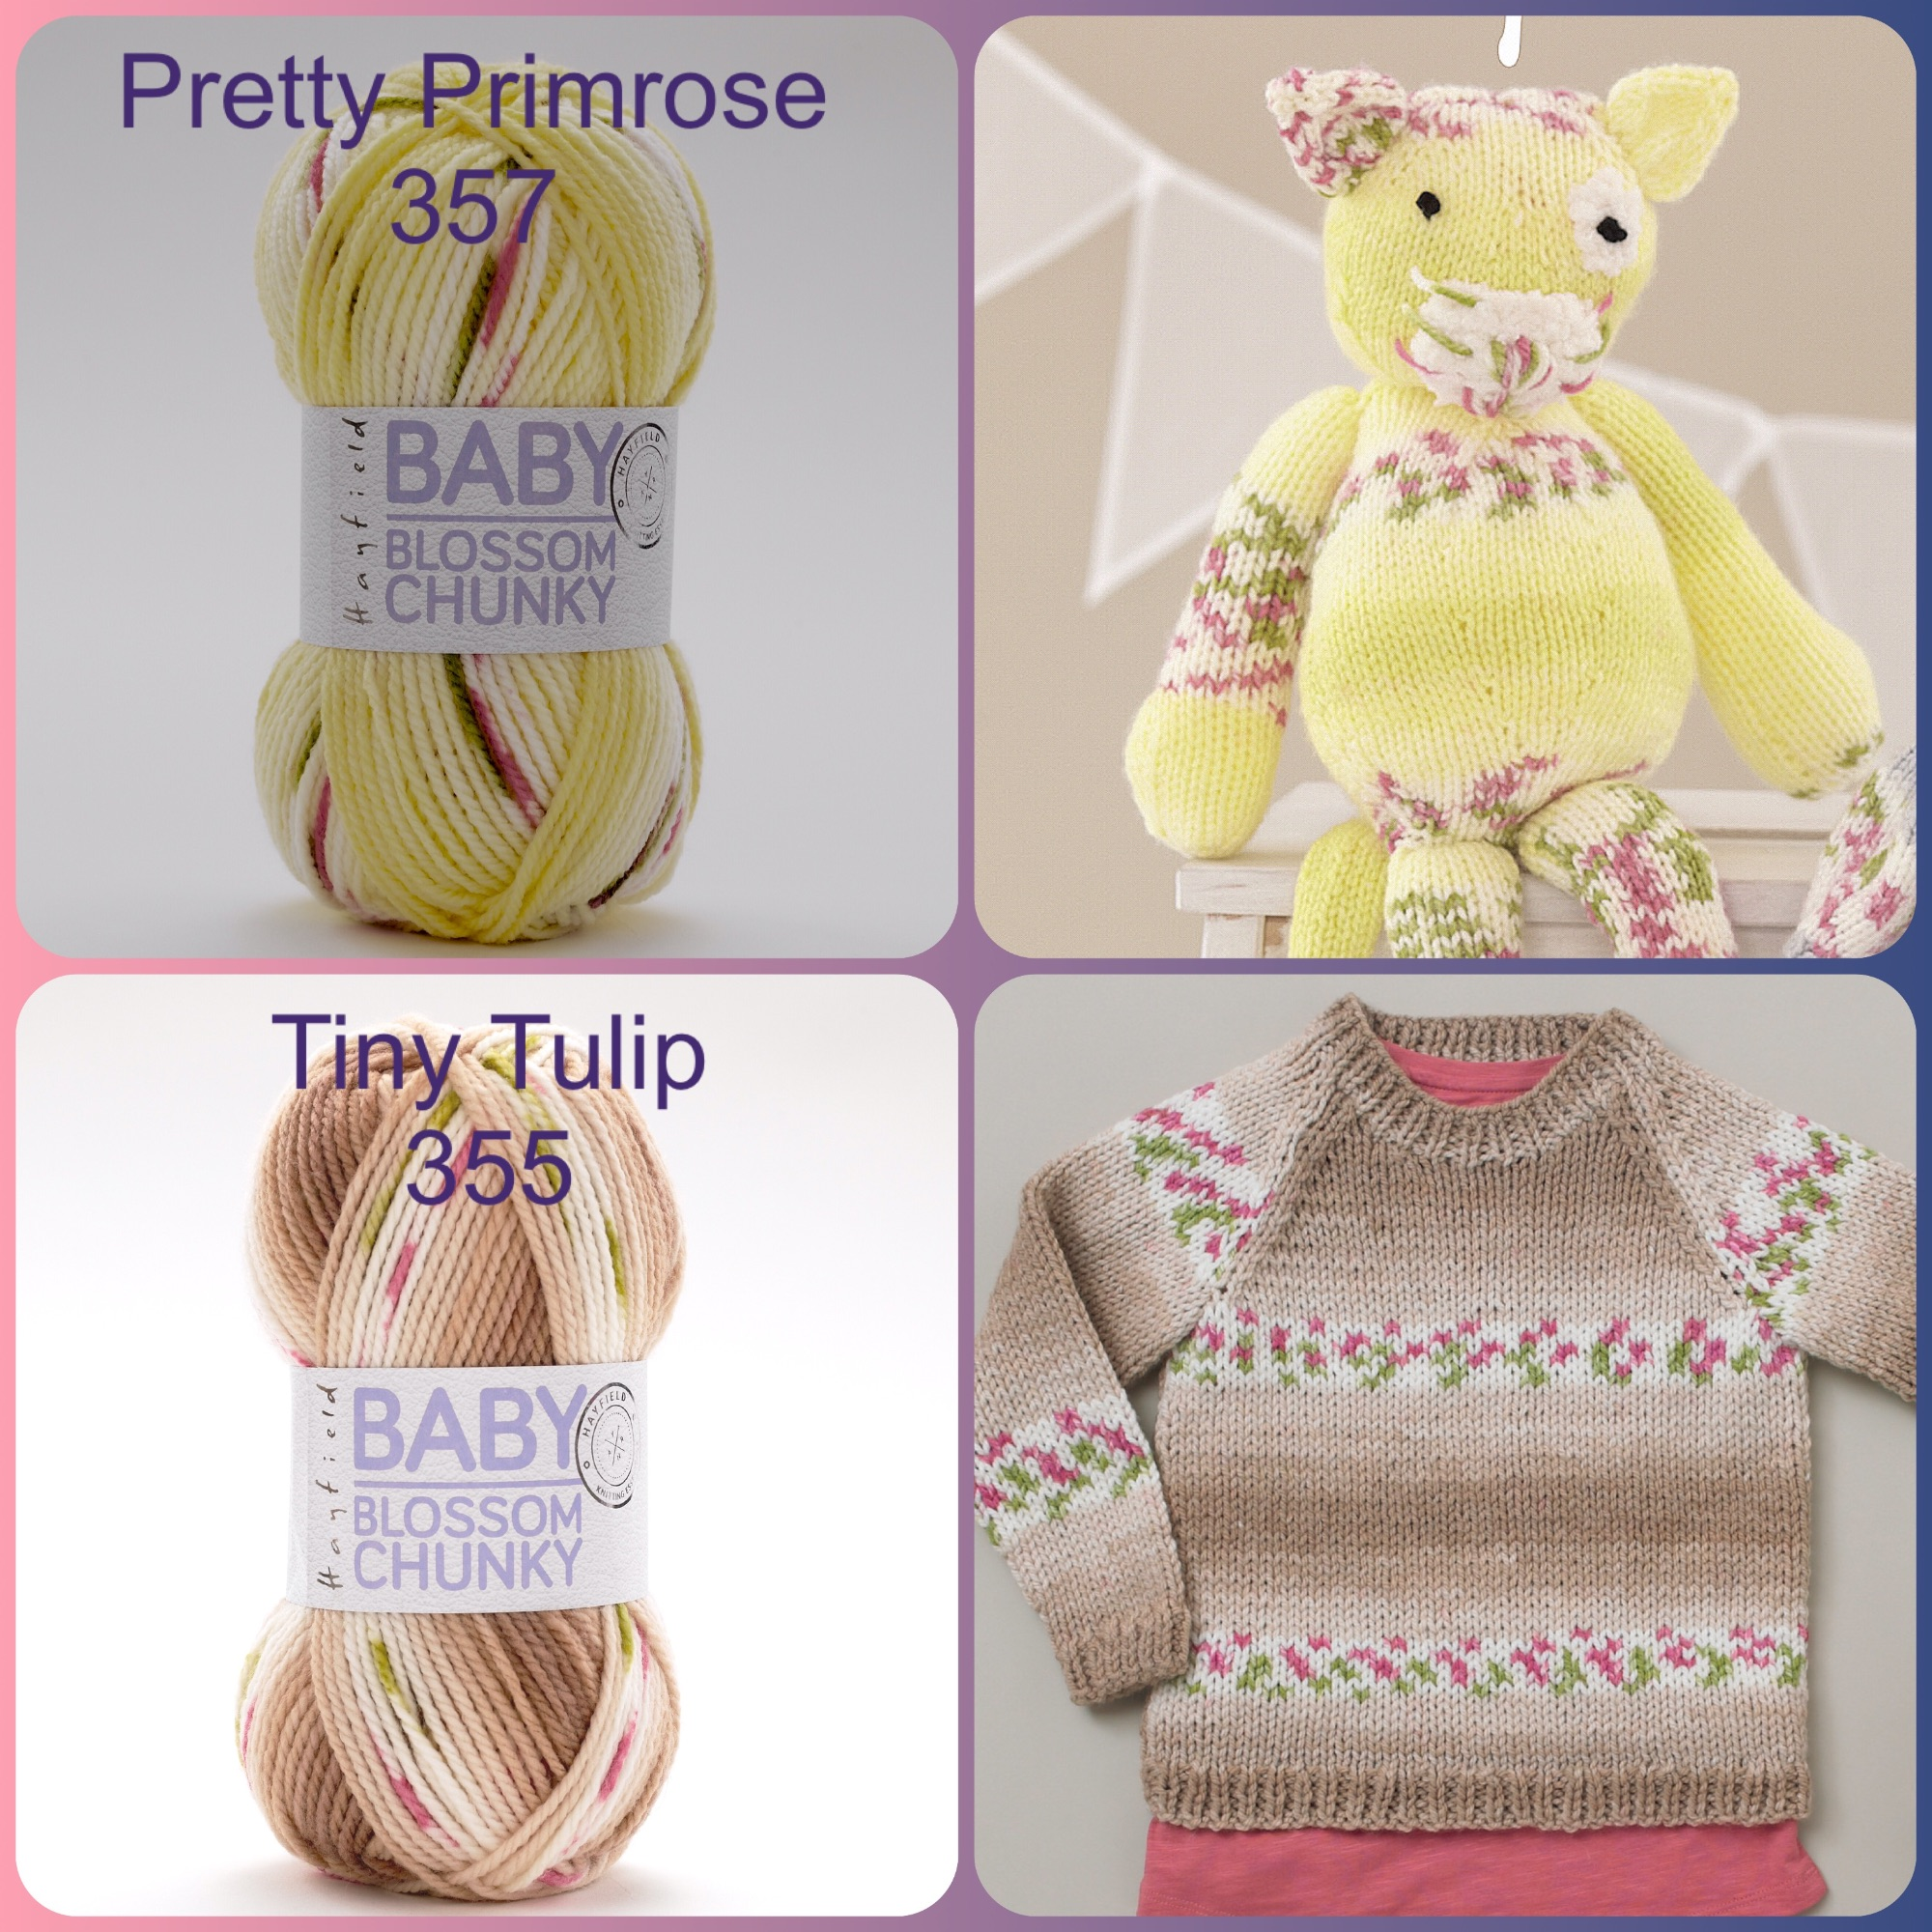 Hayfield baby blossom chunky yarn pretty primrose tiny tulip colours and kn